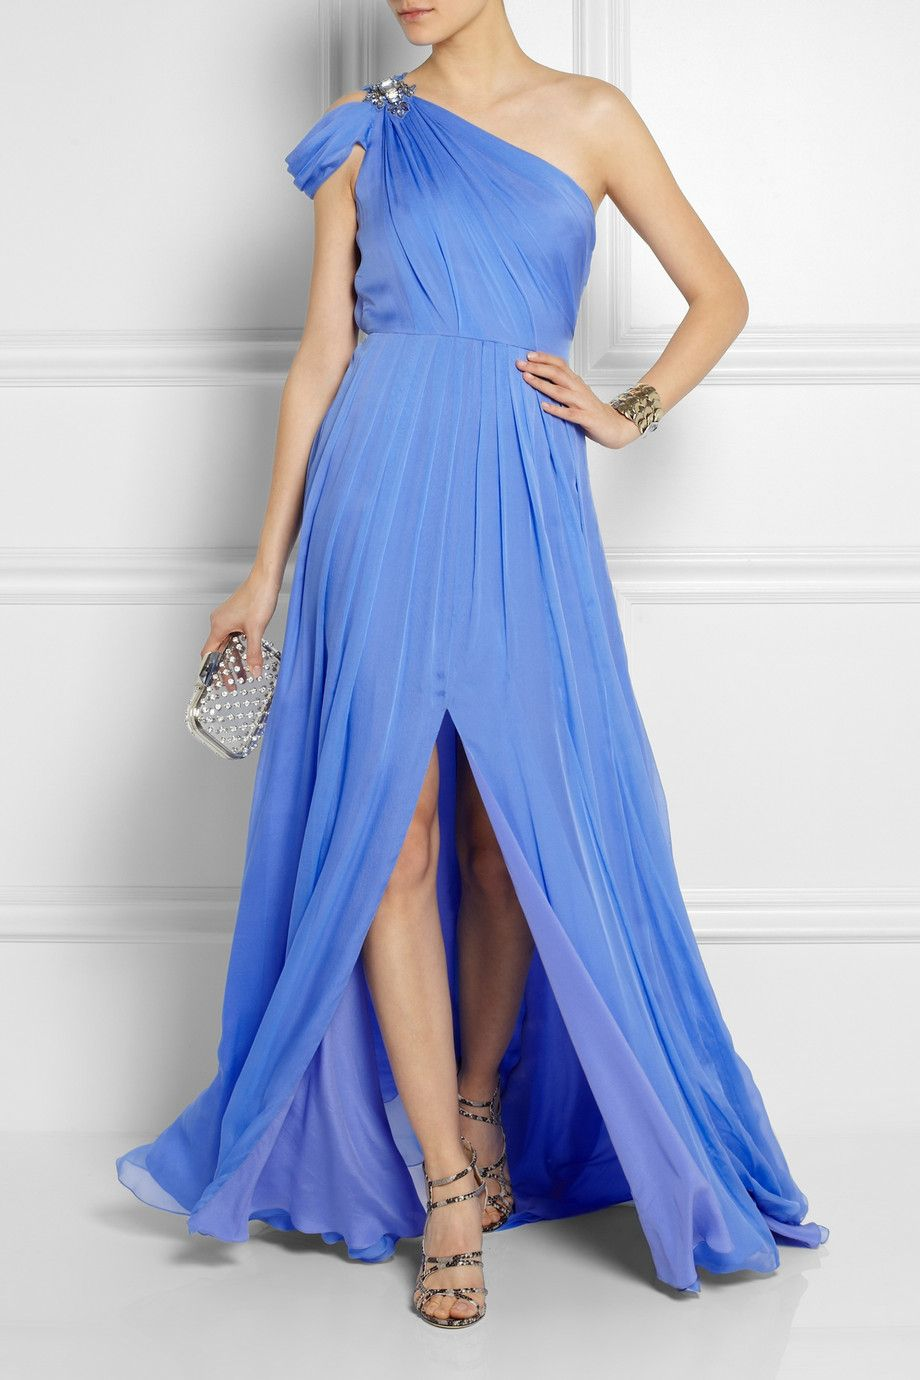 Color azul matthew williamson oneshoulder embellished silk